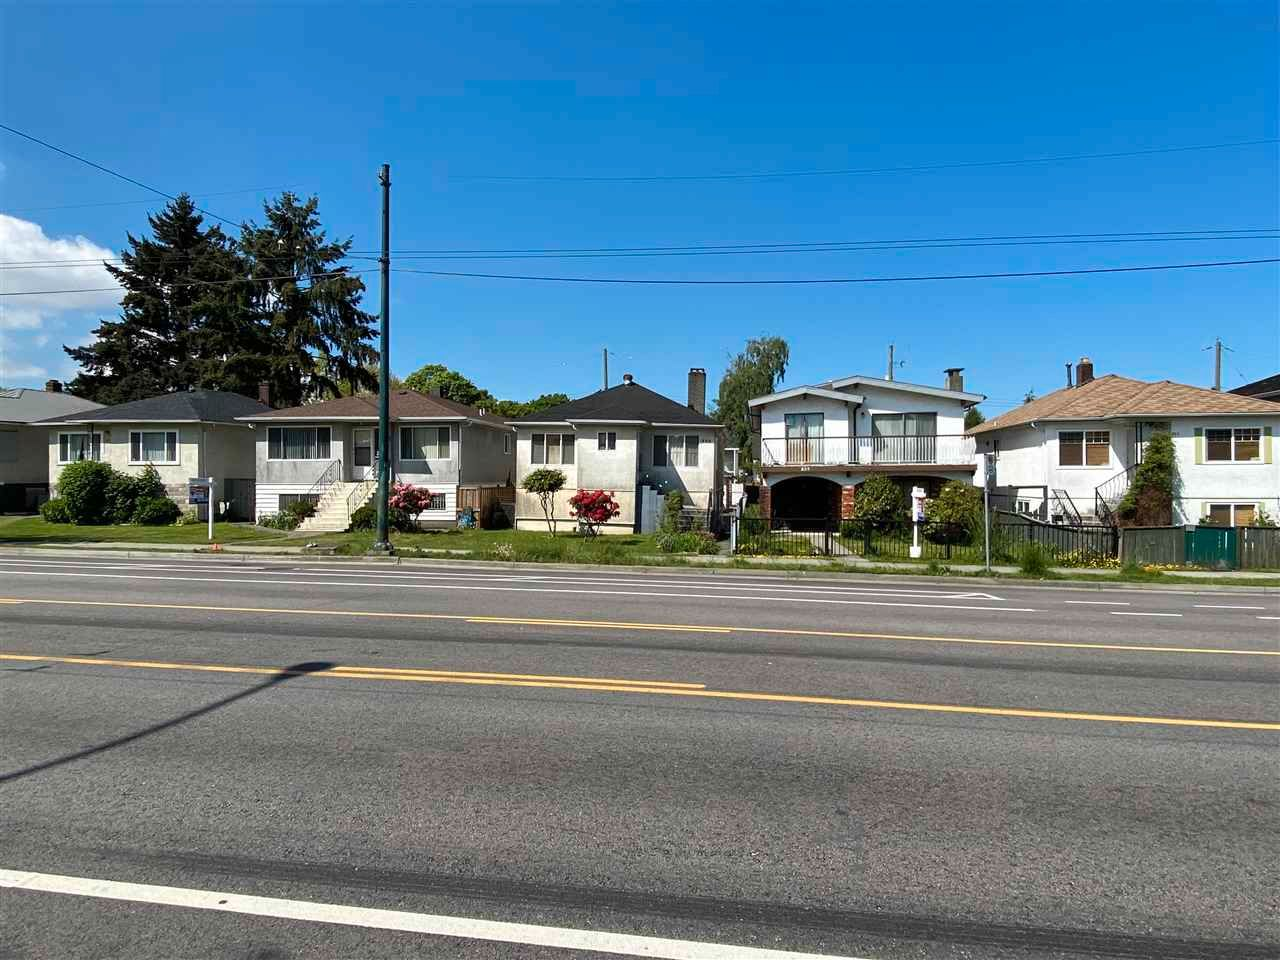 Photo 13: Photos: 875 NANAIMO Street in Vancouver: Hastings House for sale (Vancouver East)  : MLS®# R2567915